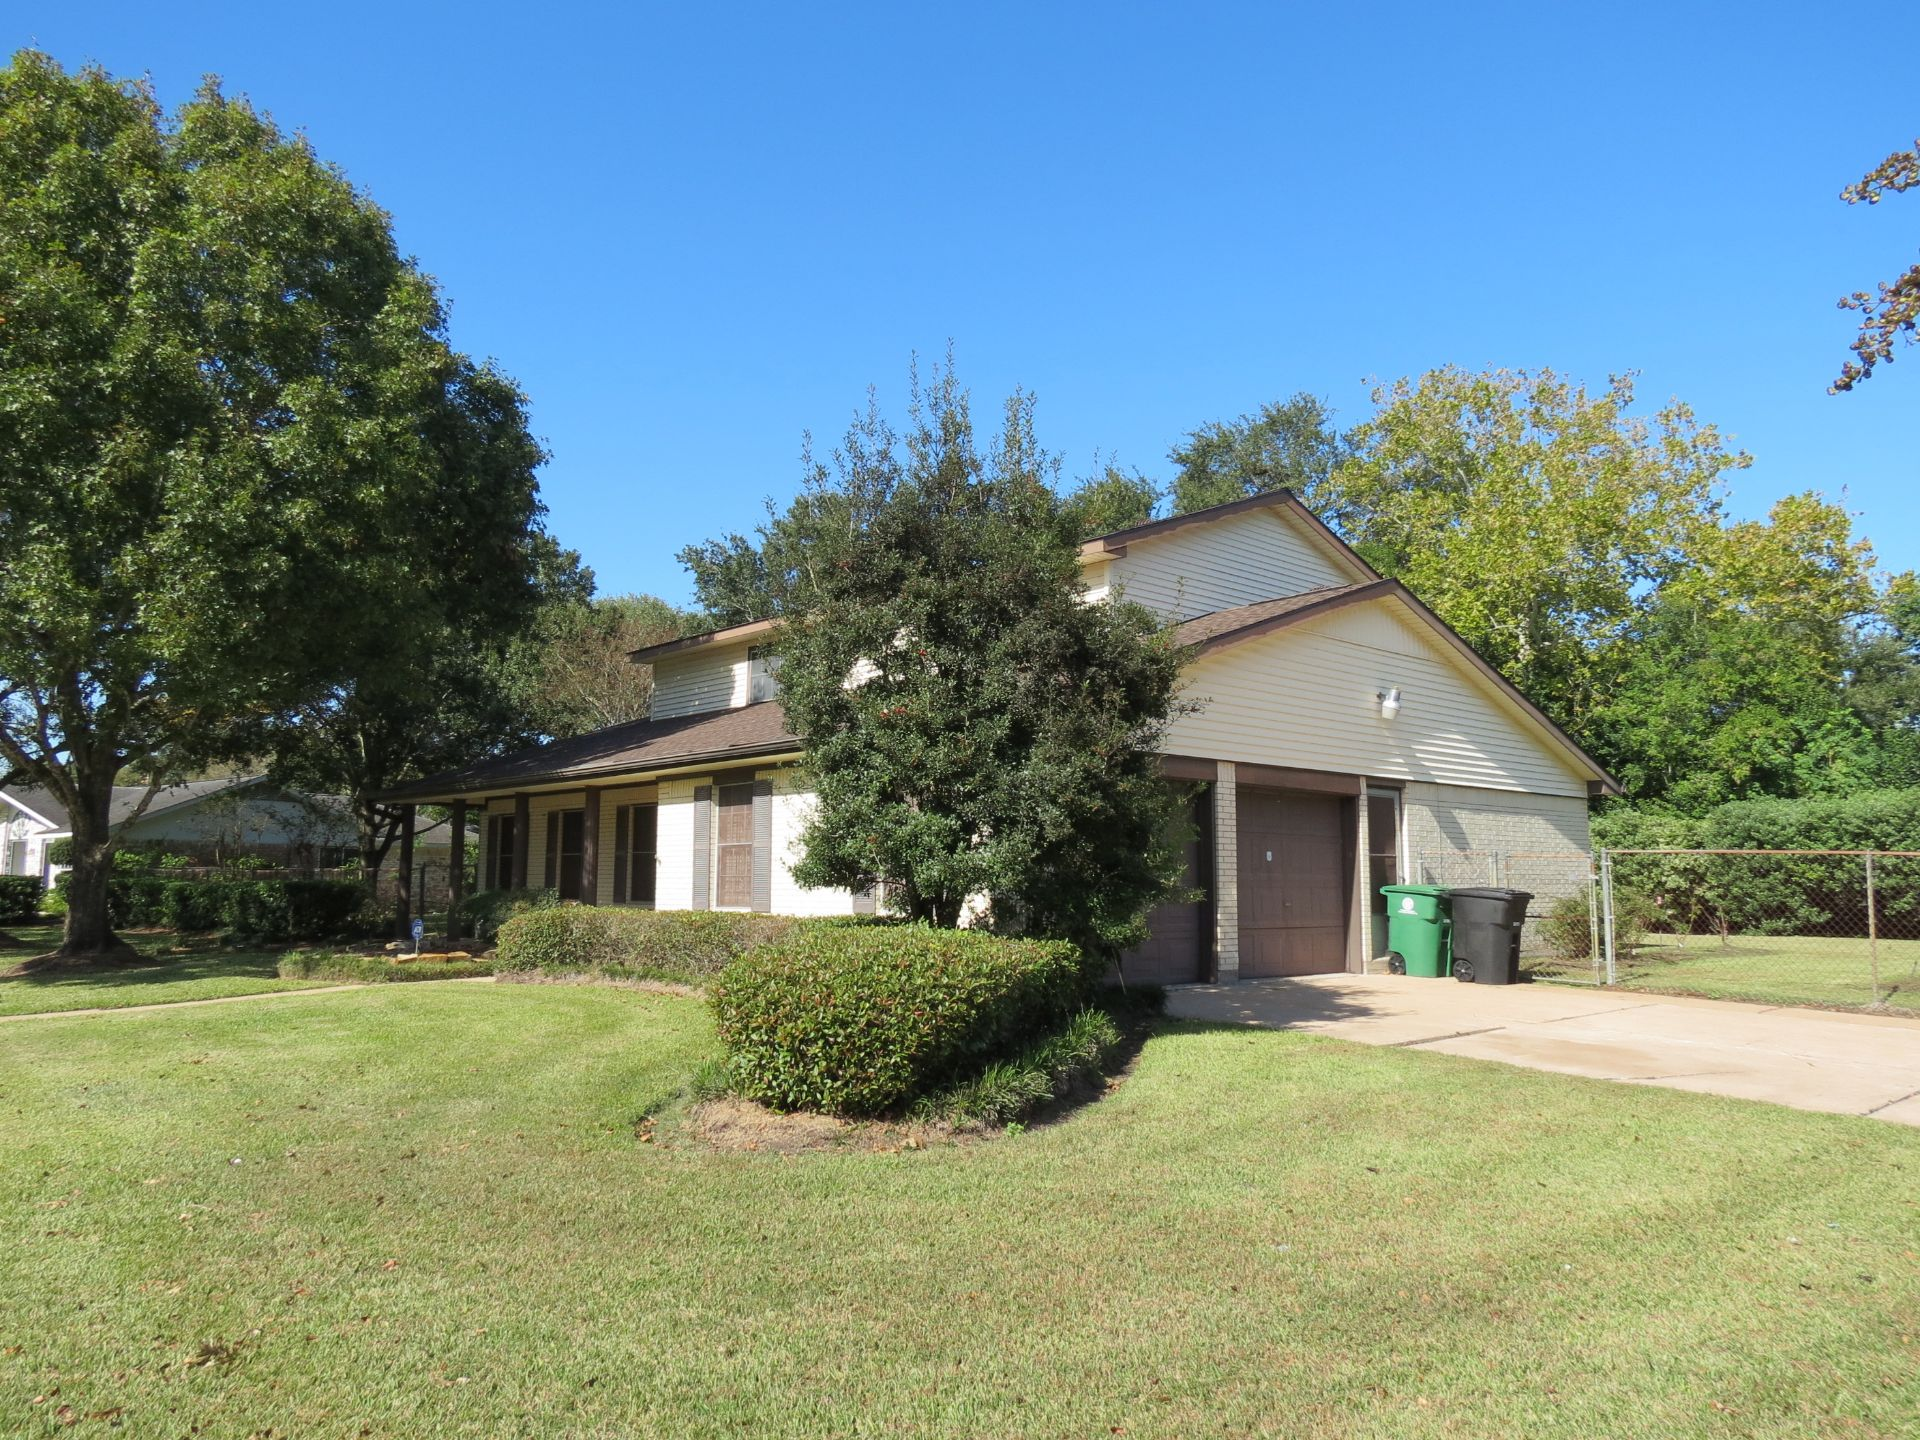 Lot 1 - Home on Kirkvalley